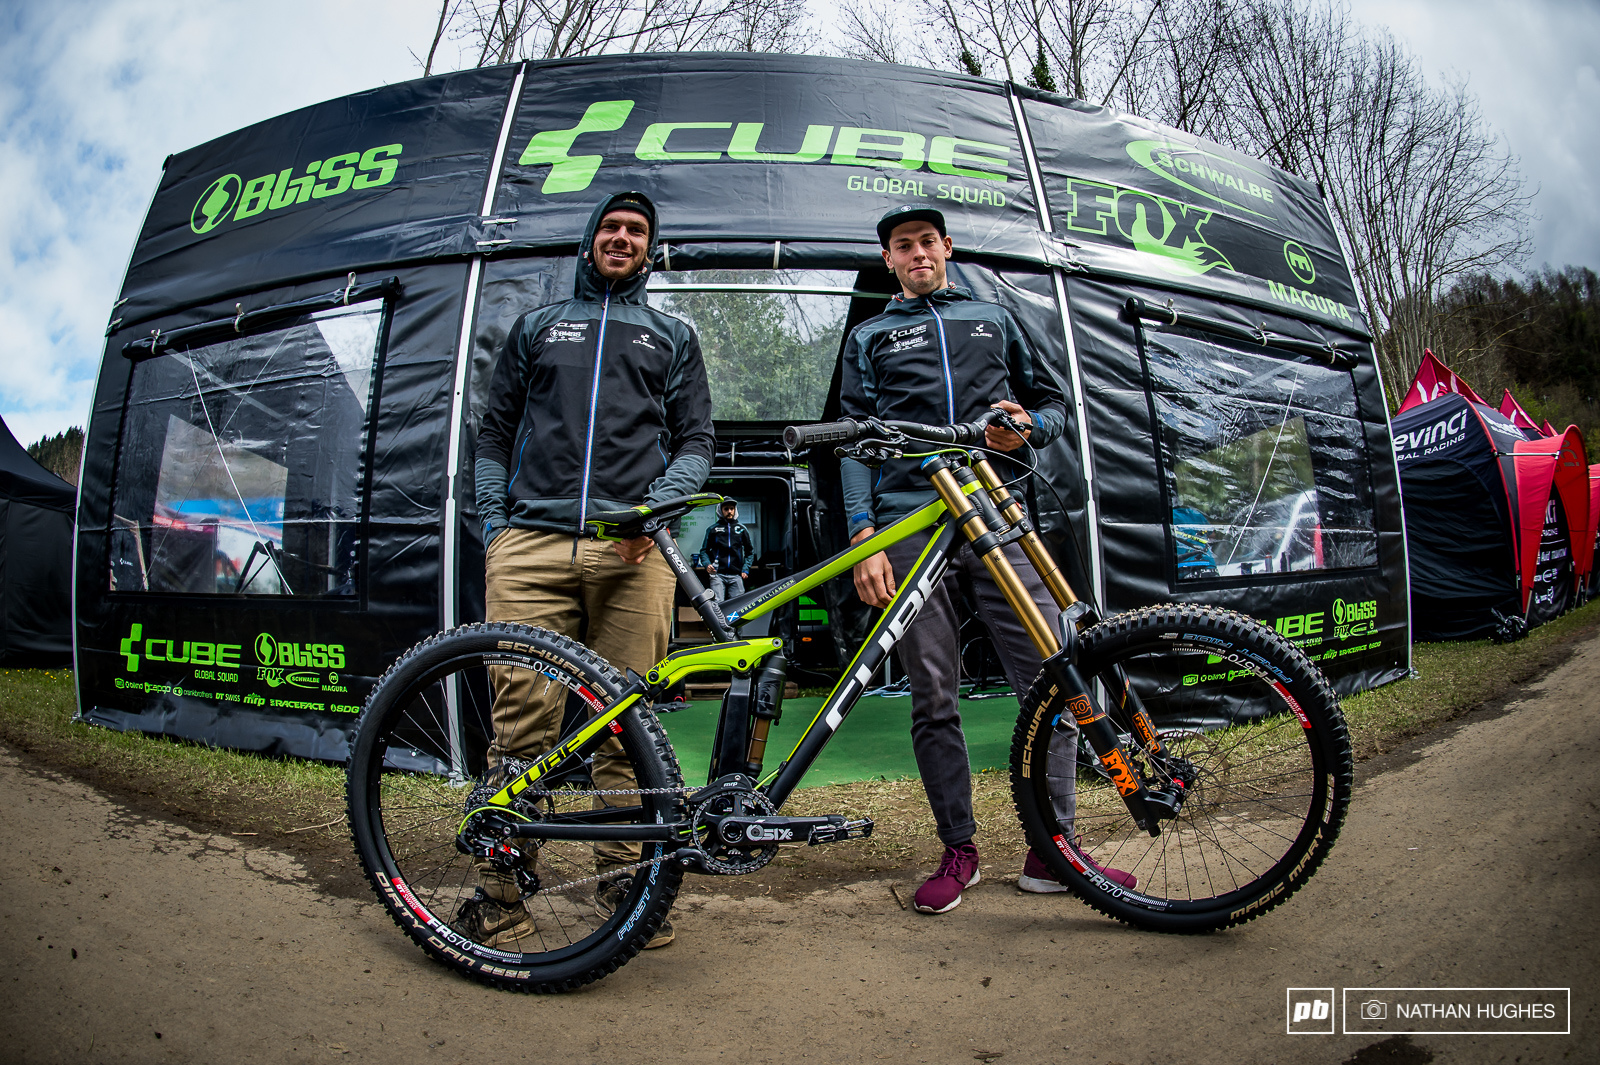 Matt Walker and Greg Williamson representing the newly formed green-team, the Cube Global Squad, on the Two15 downhill bike.